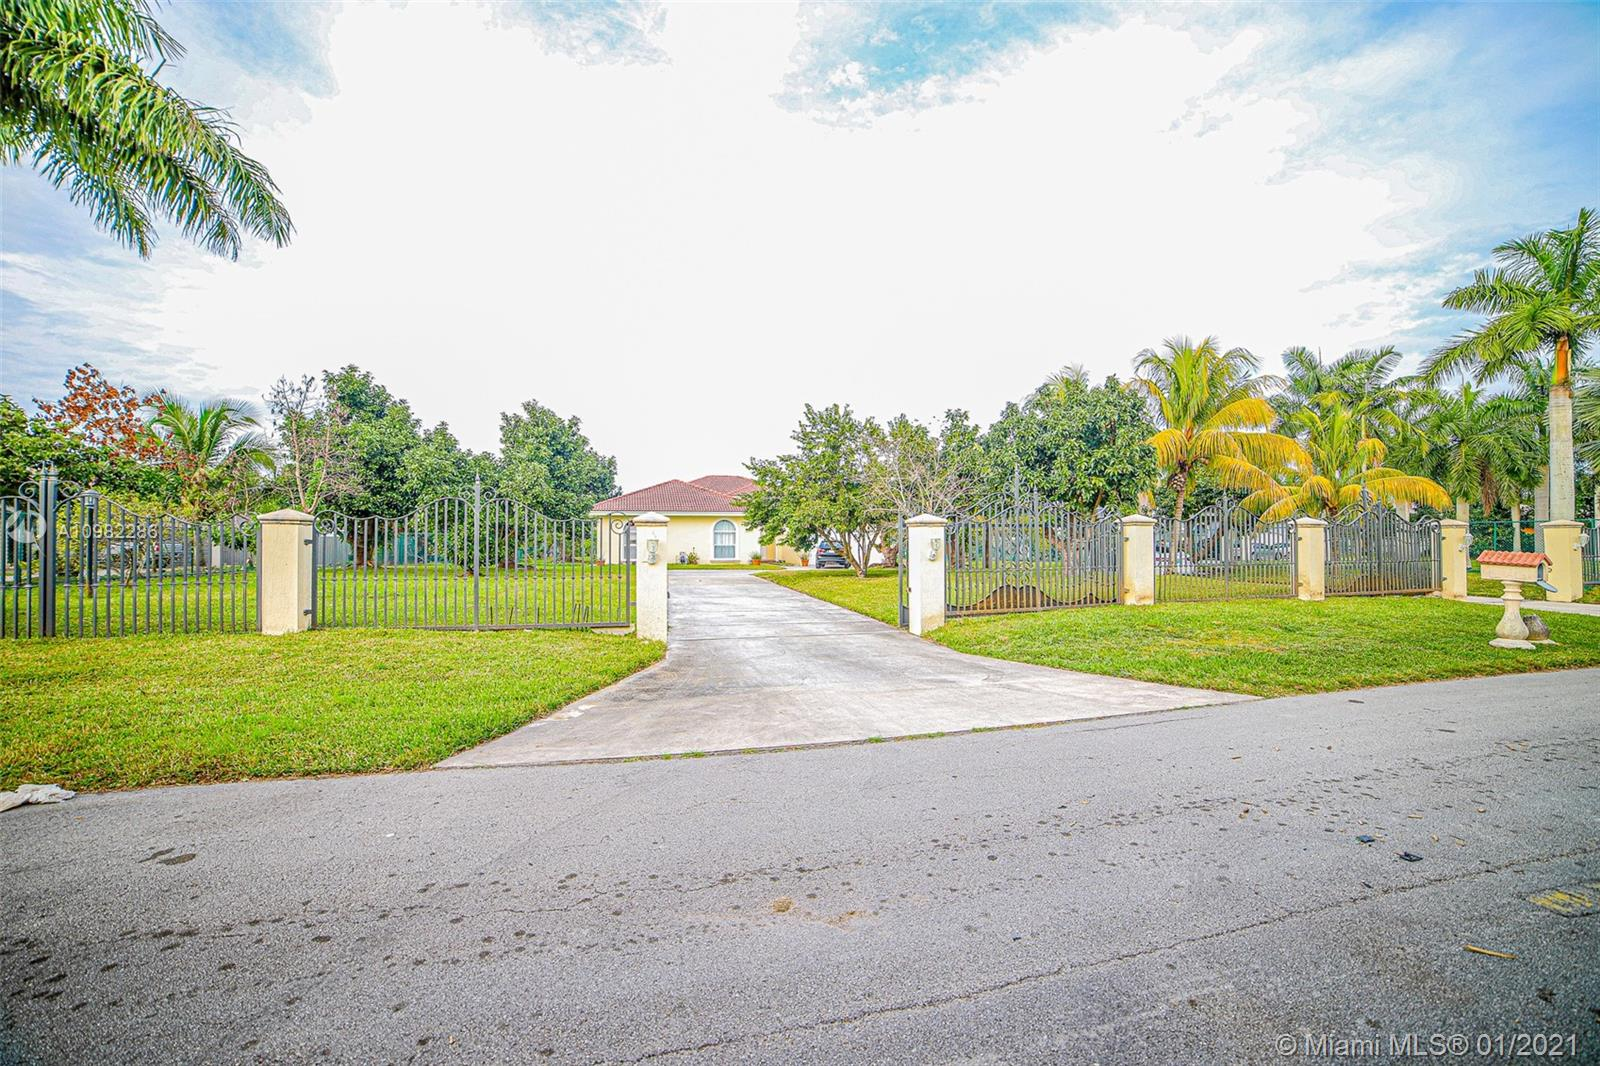 15563 SW 276th St Property Photo - Homestead, FL real estate listing